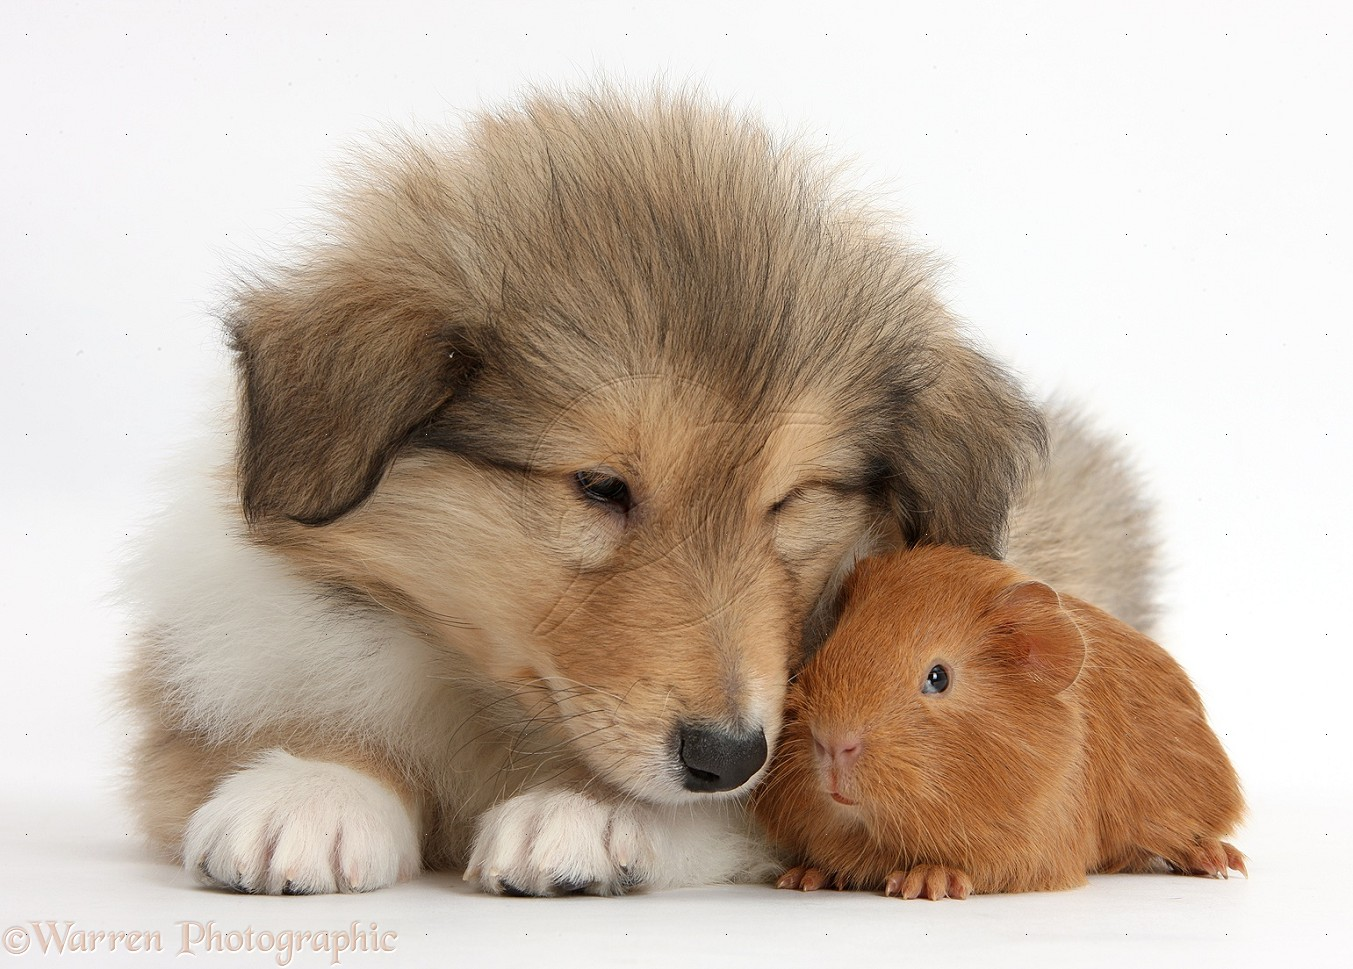 Cute Puppies Wallpaper White Dinosaur Farts Smell Like Oil Everything I Like And Want